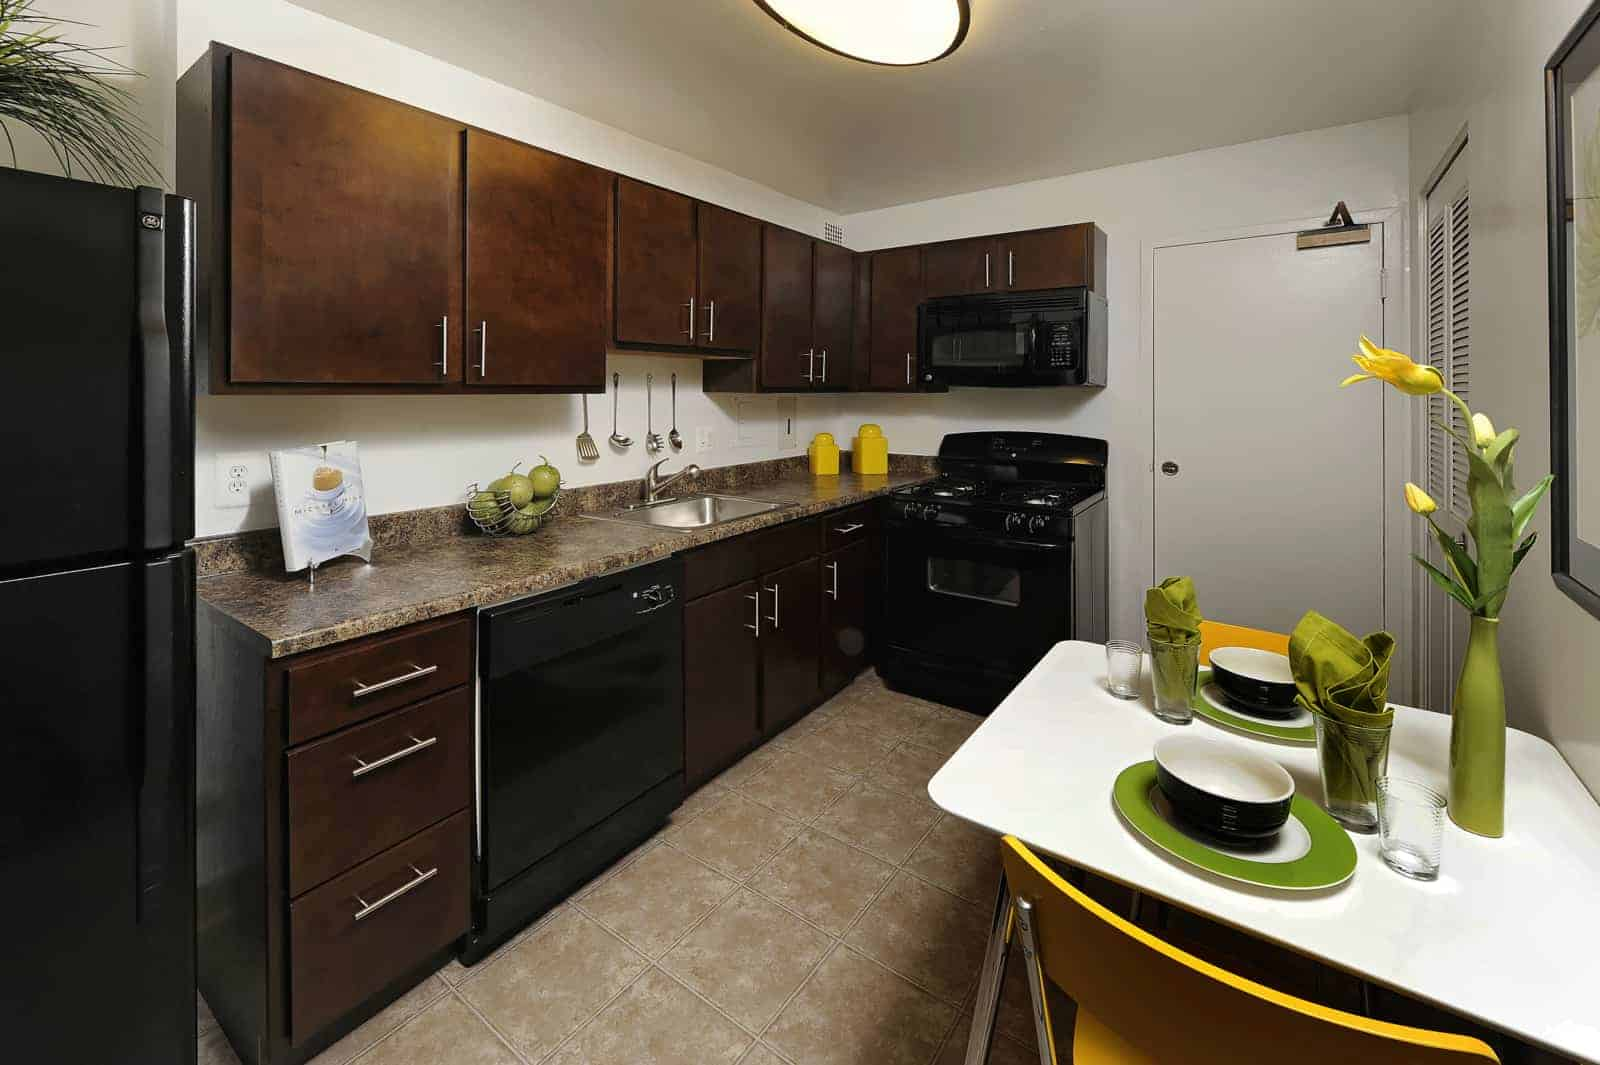 Interior of kitchen with black appliances and brown cabinets.